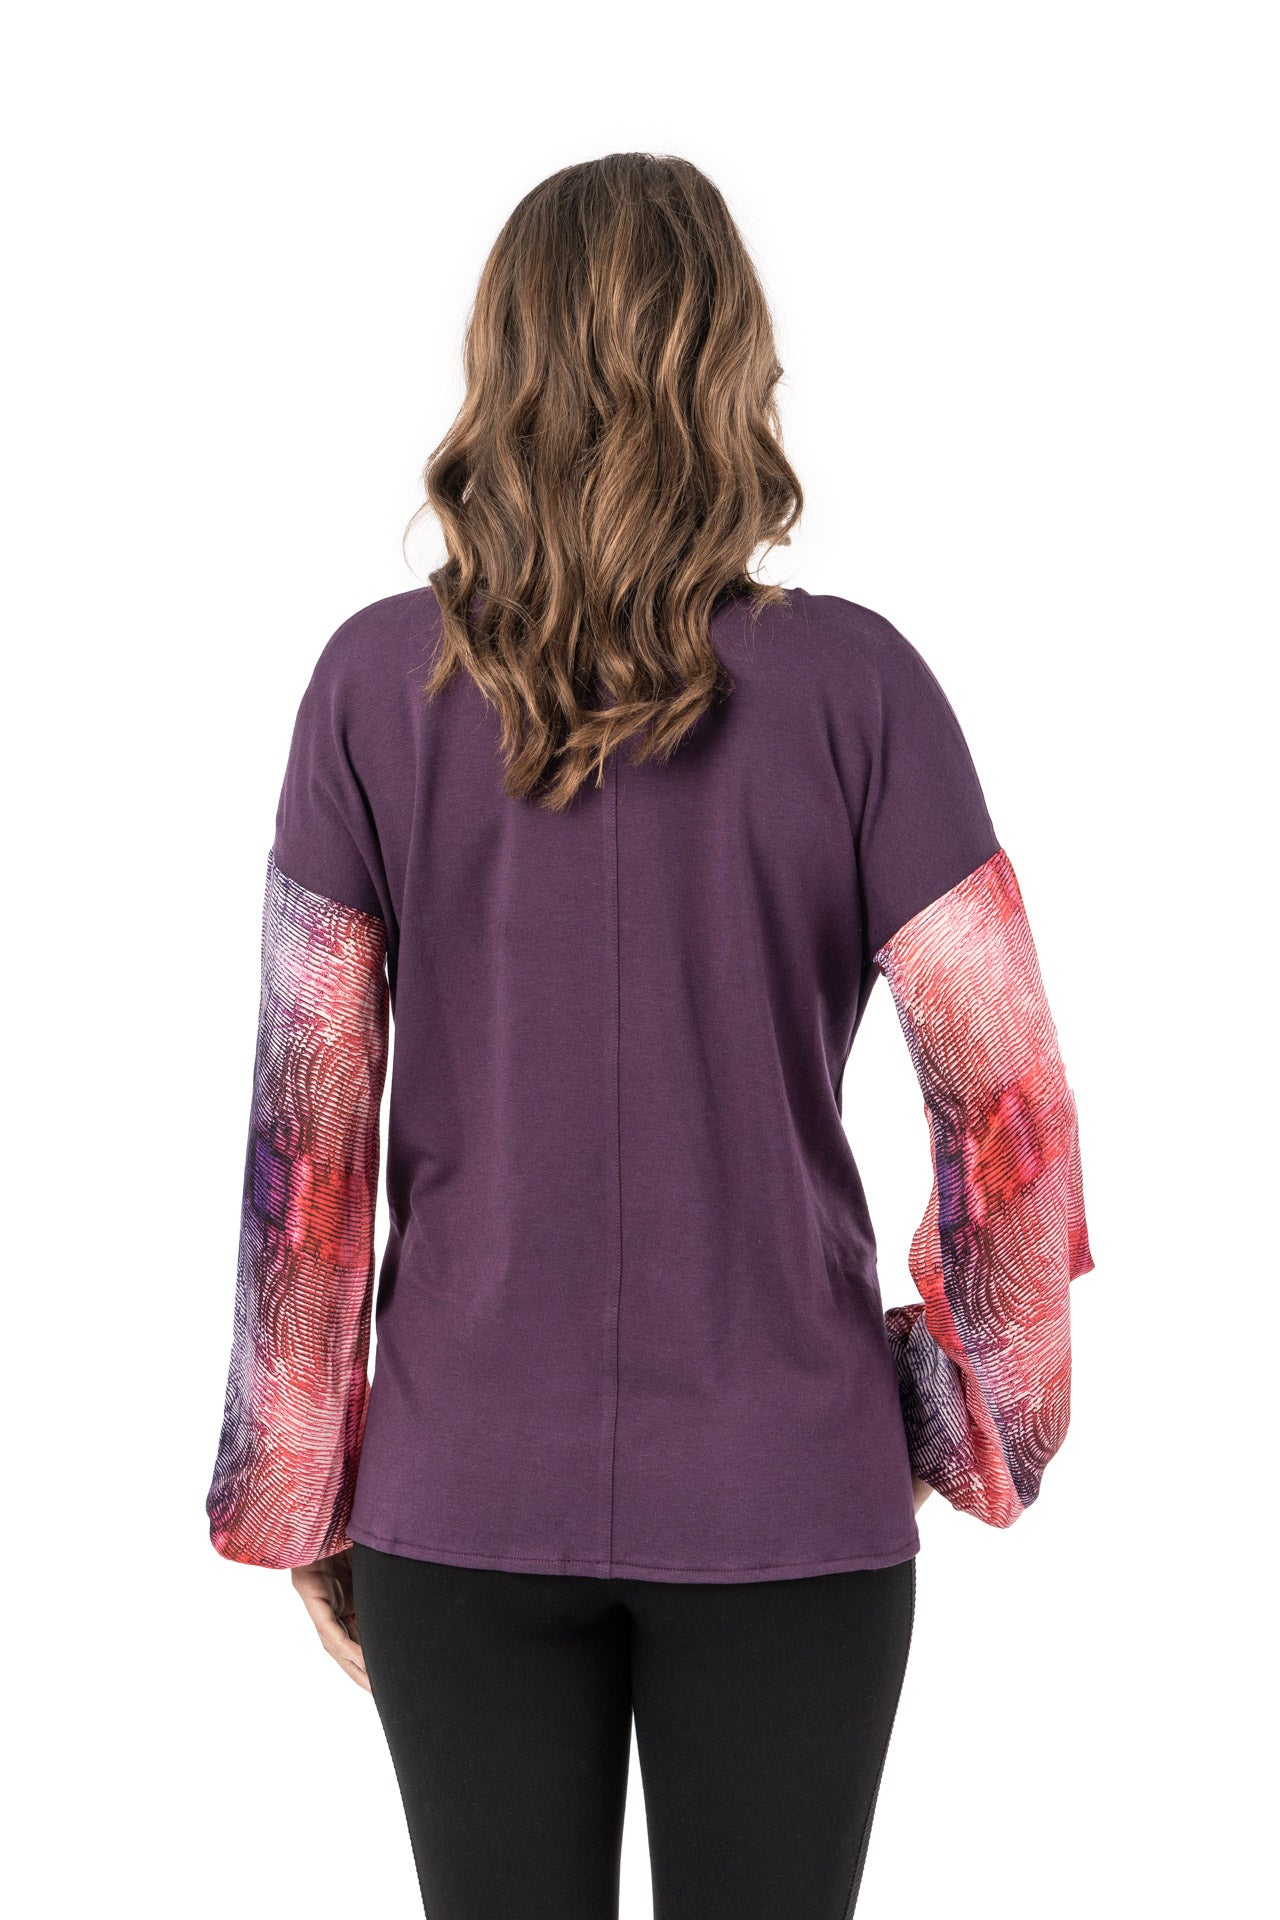 Papier Top - Red Plum Print Long Sleeve Top - artTECA